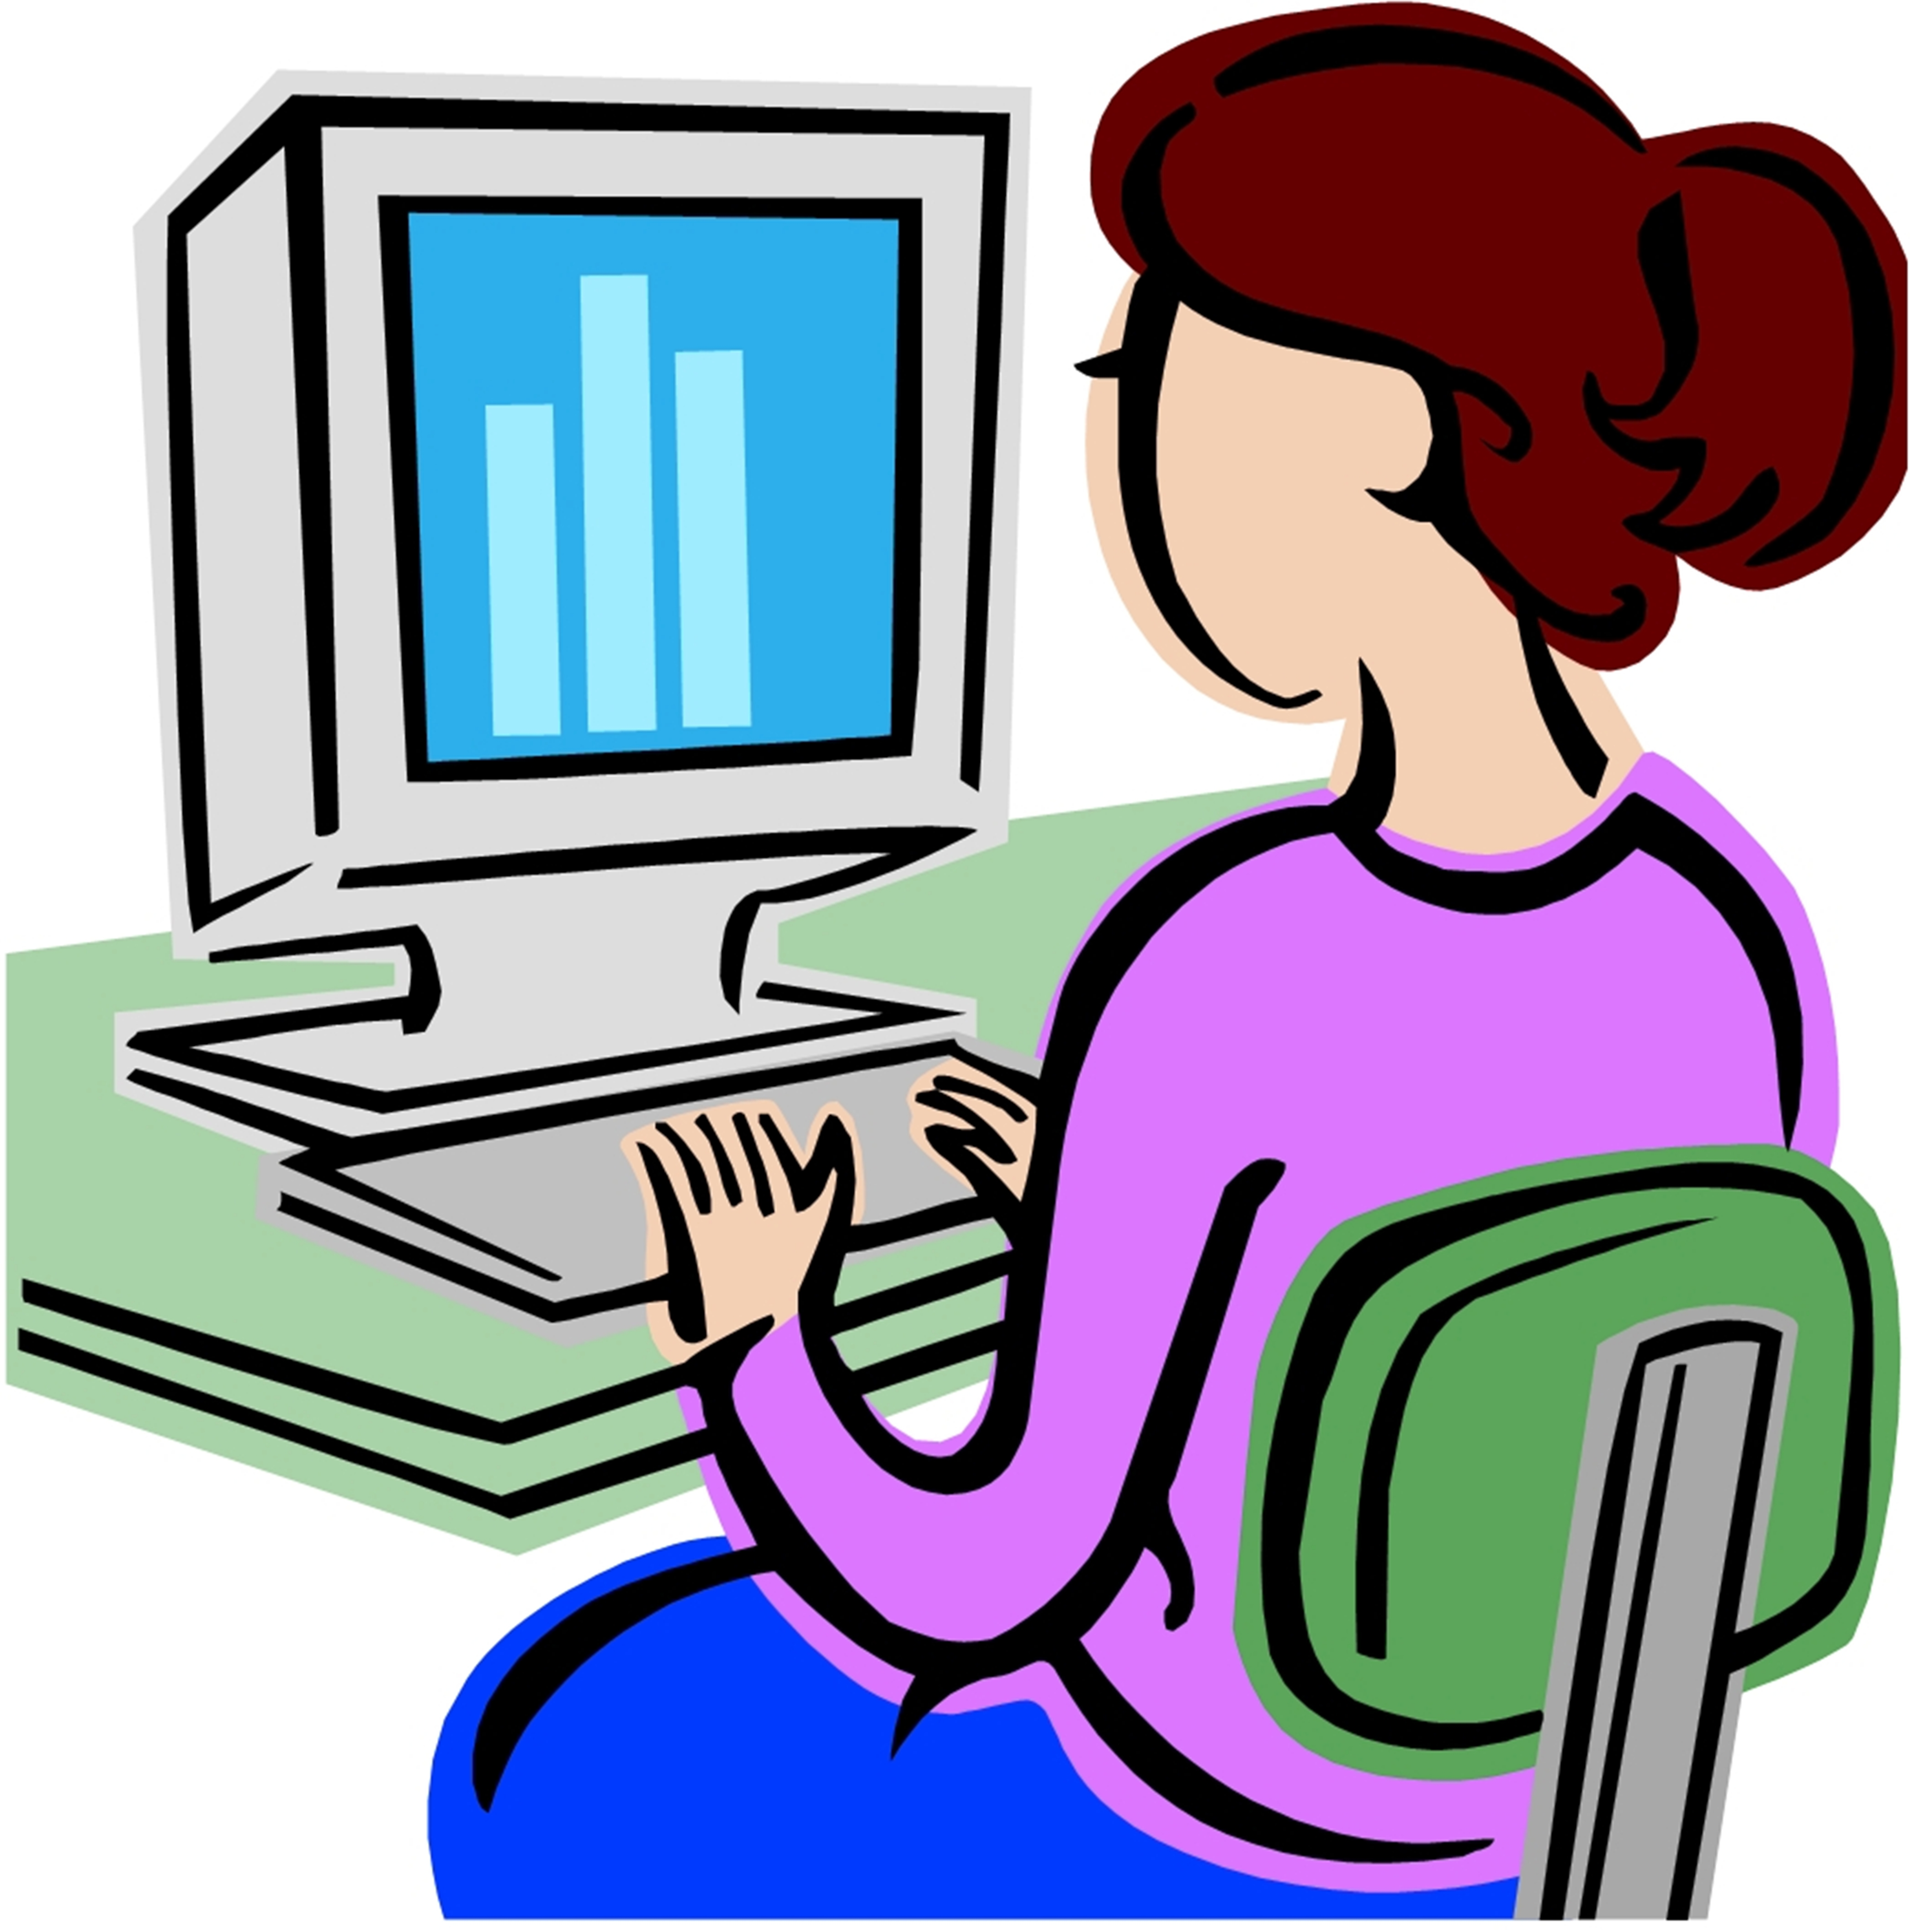 computer education clipart - photo #4